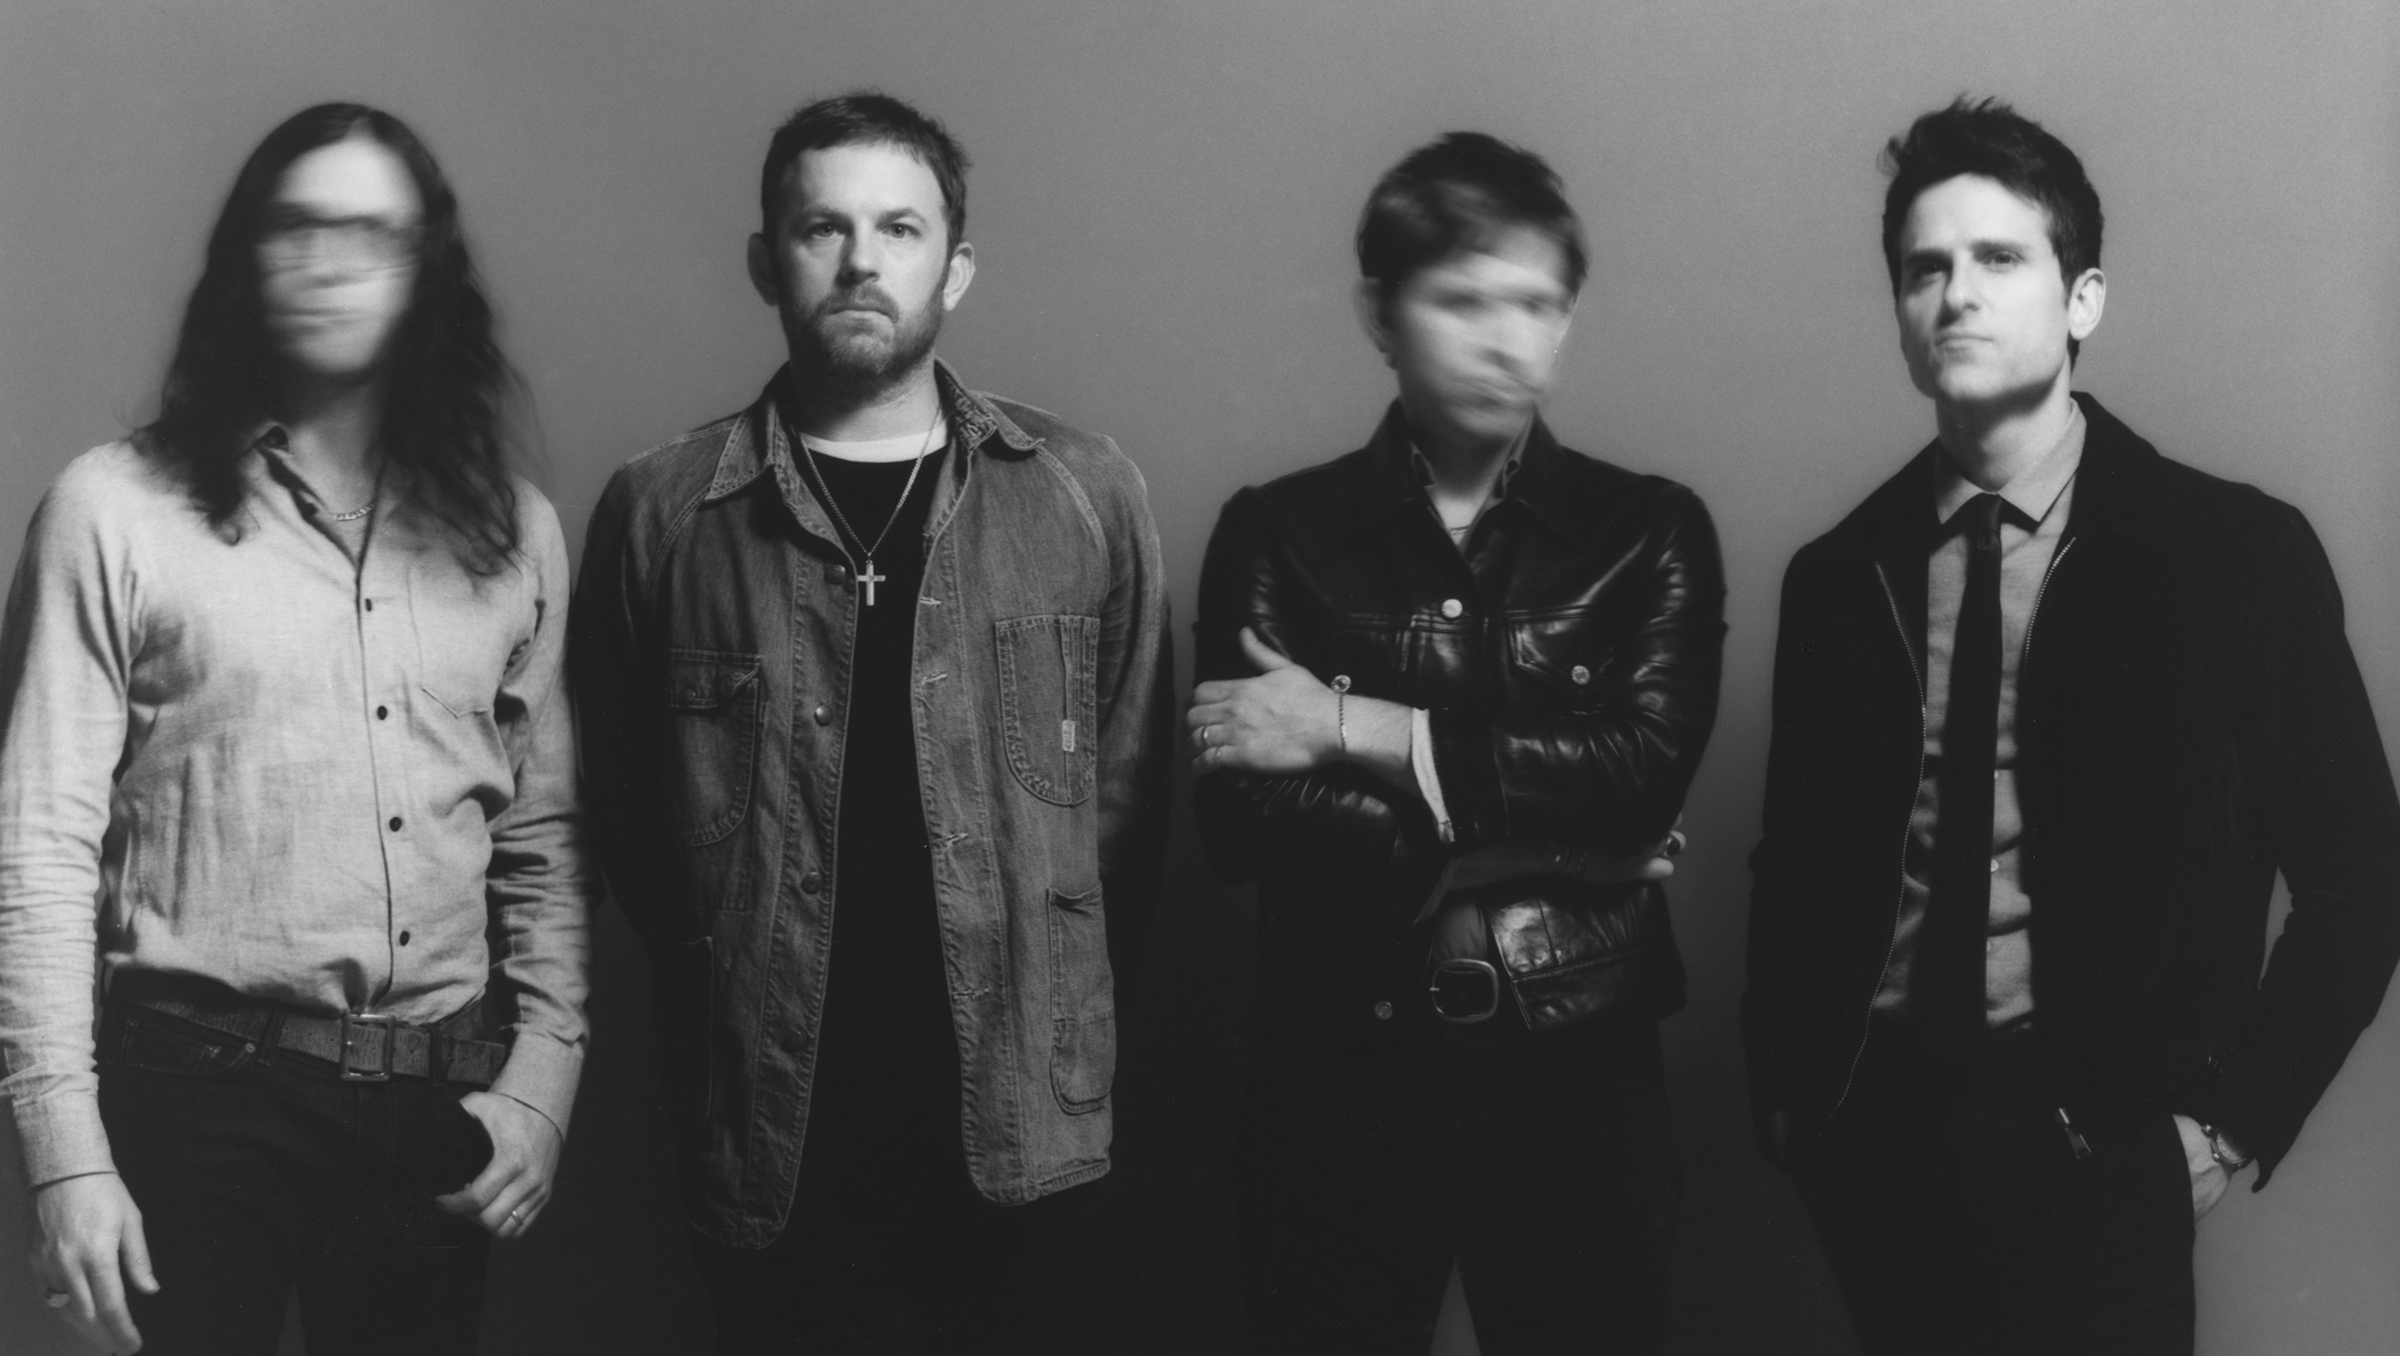 KINGS OF LEON return to Dublin for an exclusive performance at RDS ARENA on 1st July 2020